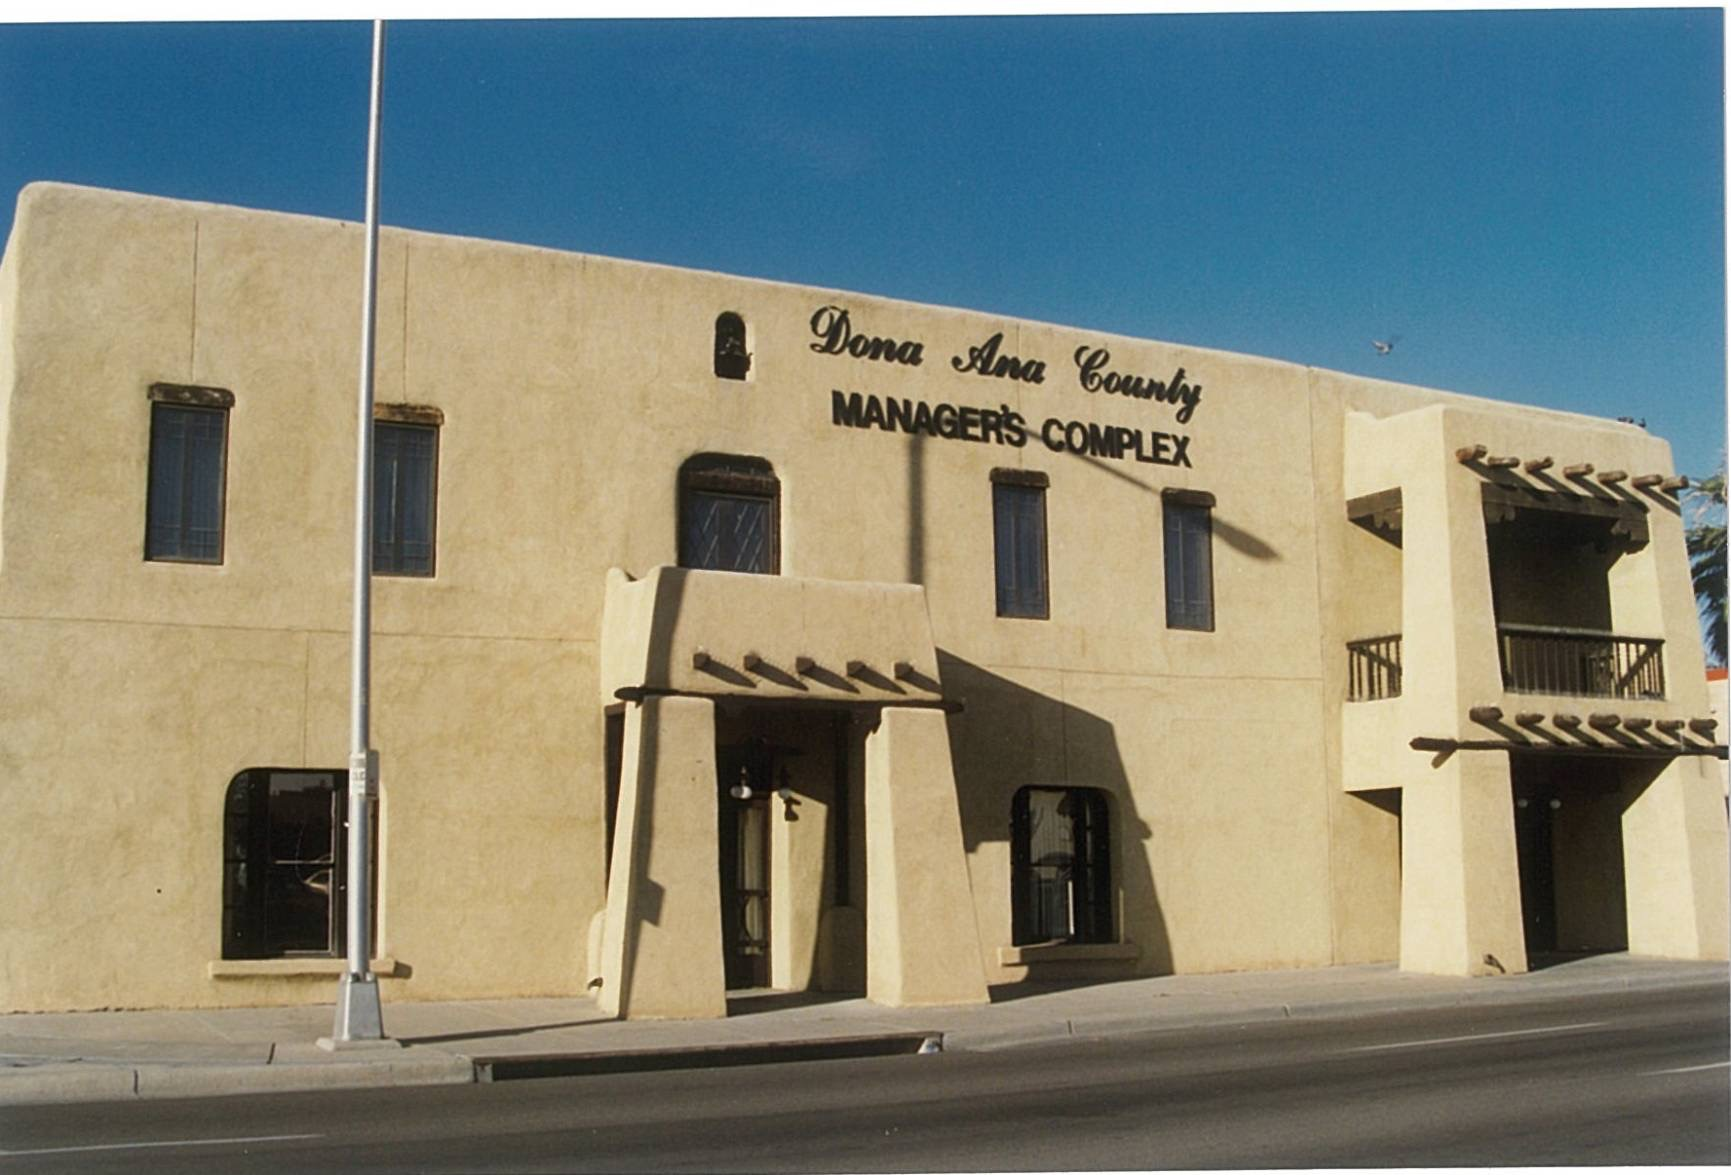 Doña Ana County Manager's Complex, 1990s